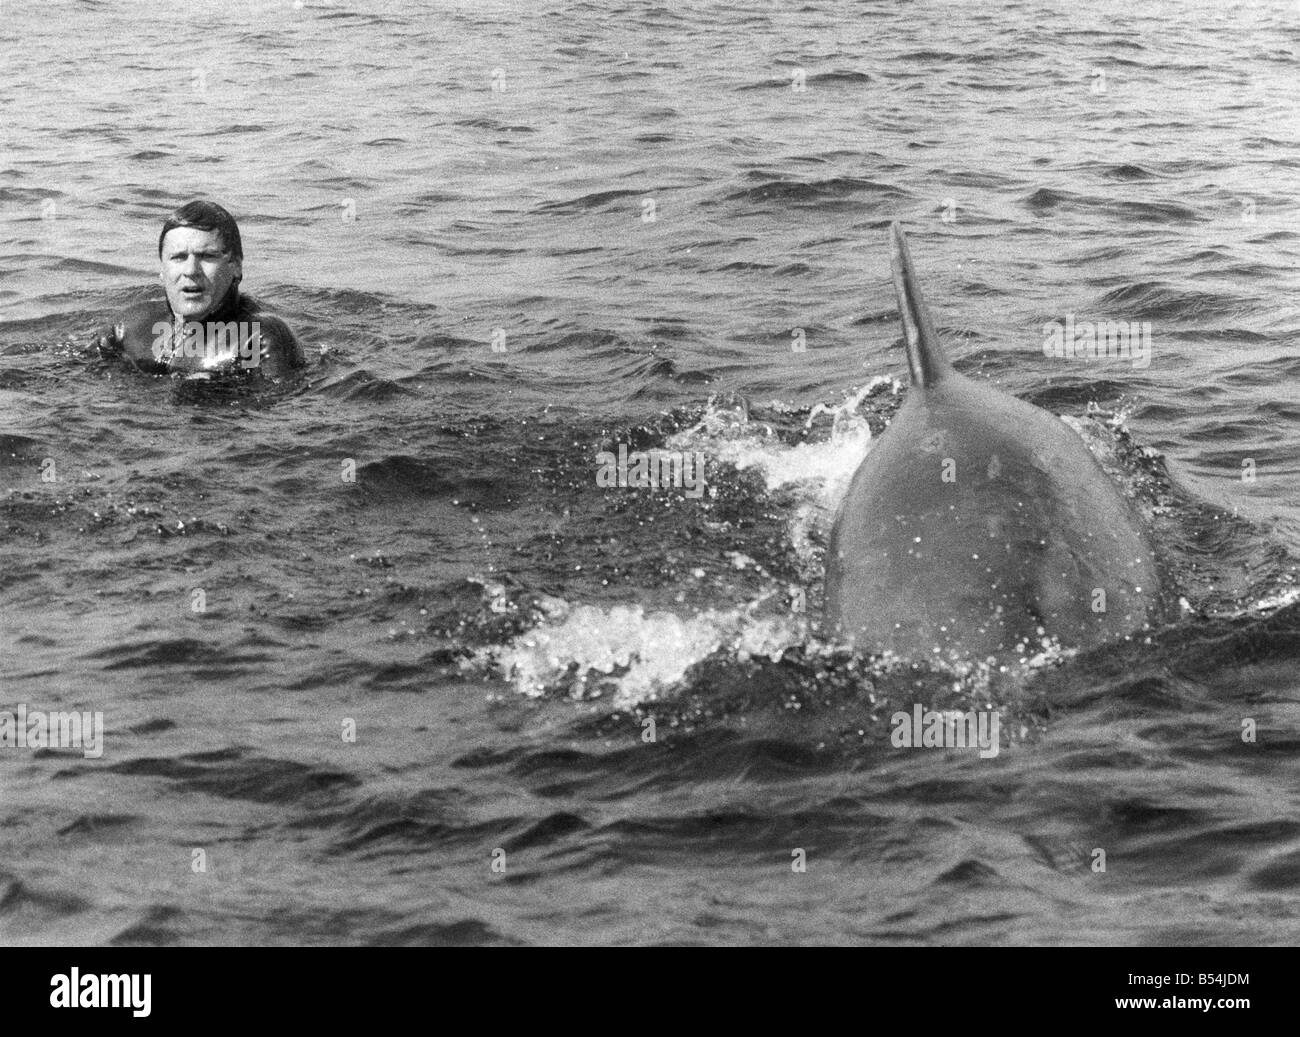 Percy the dolphin pops up to say hello to a lakeman. August 1983 